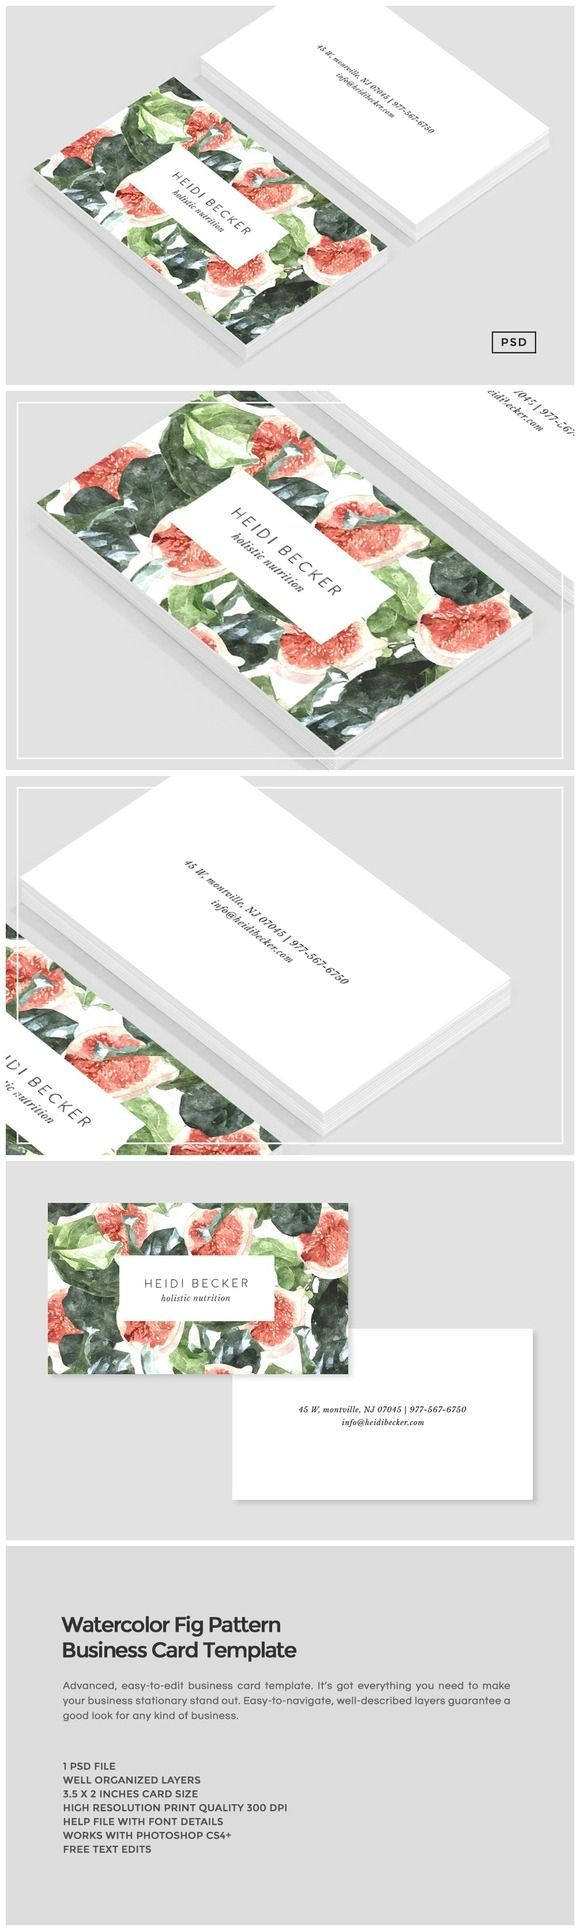 Sweet and spicy bacon wrapped chicken tenders card templates sweet and spicy bacon wrapped chicken tenders card templates business cards and marbles reheart Images